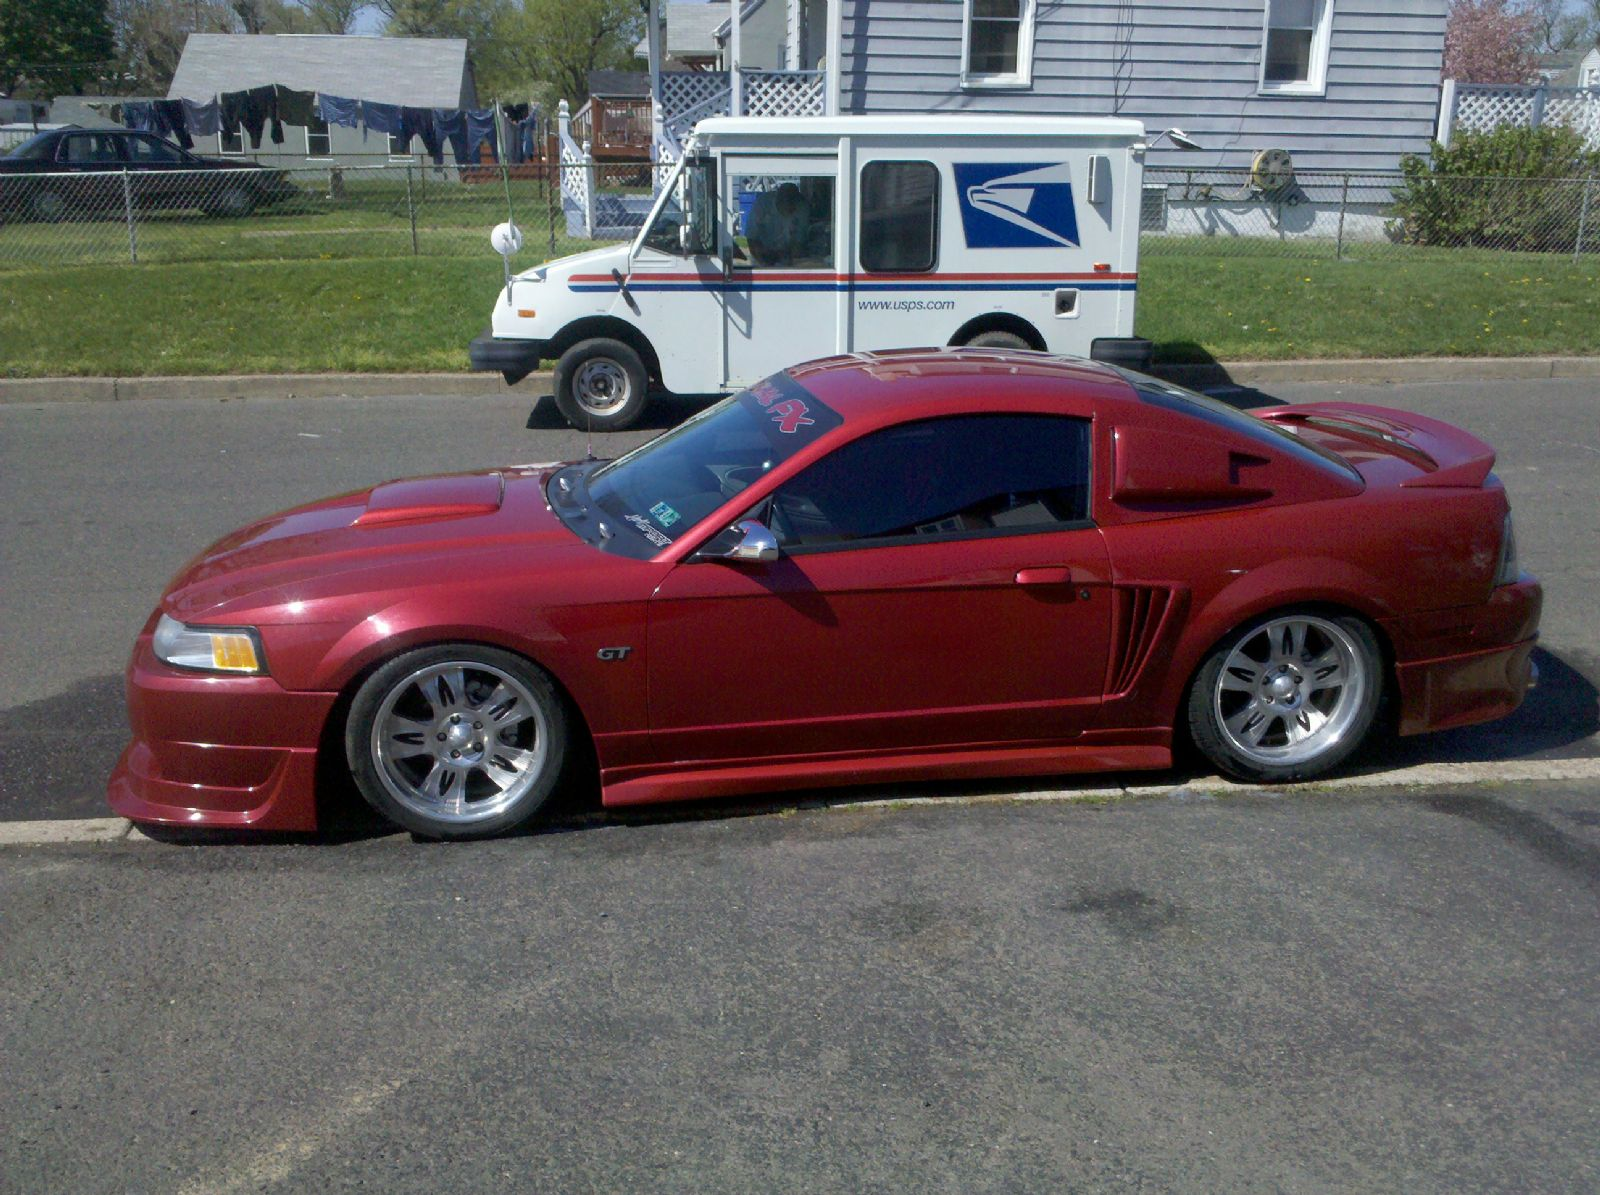 1000 images about mustangs i want on pinterest for 2000 mustang rear window louvers